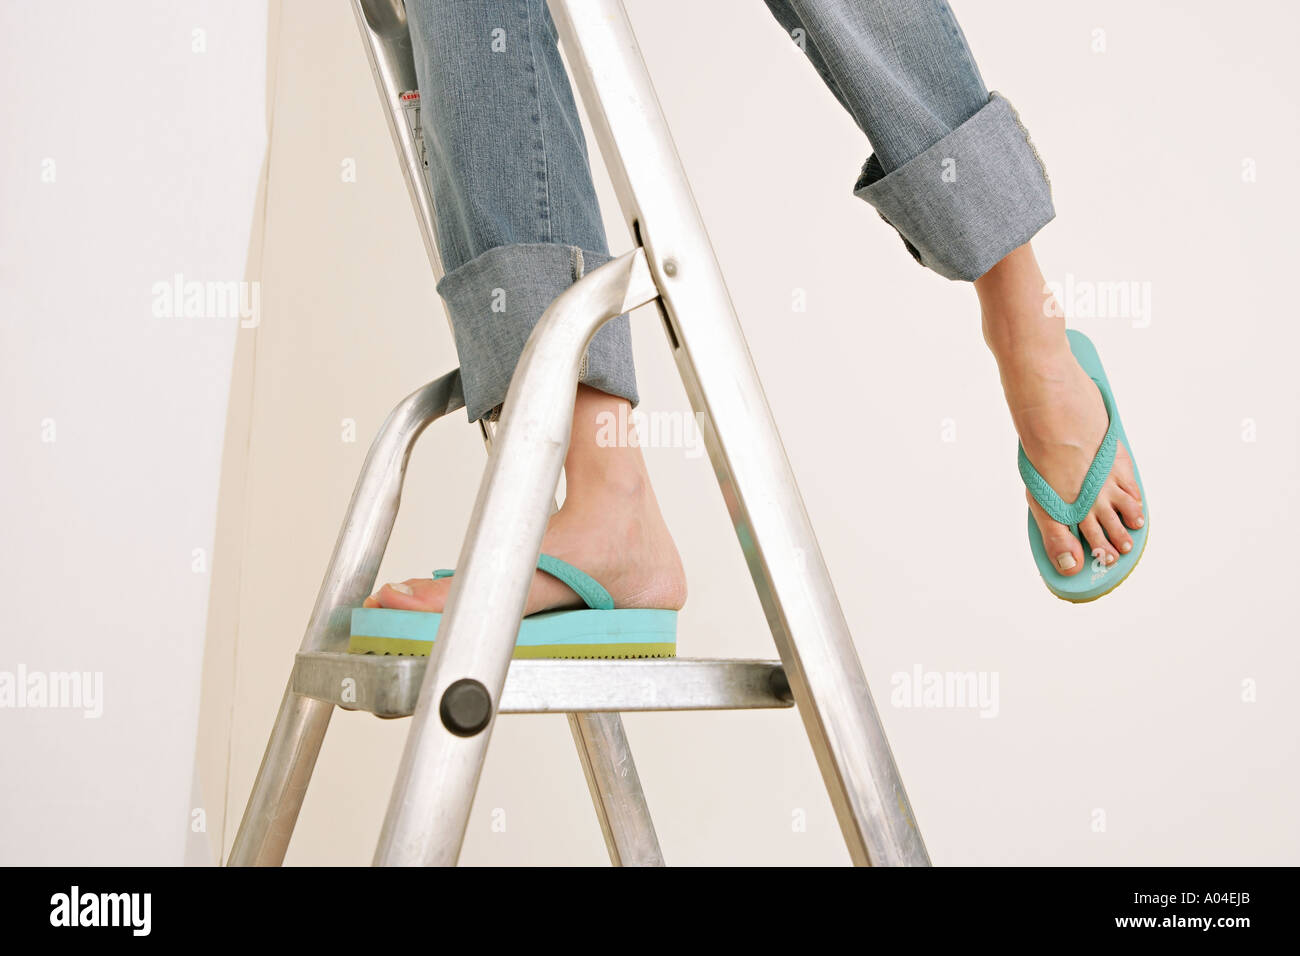 close up of female feet in flip flops standing on stepladder Stock Photo